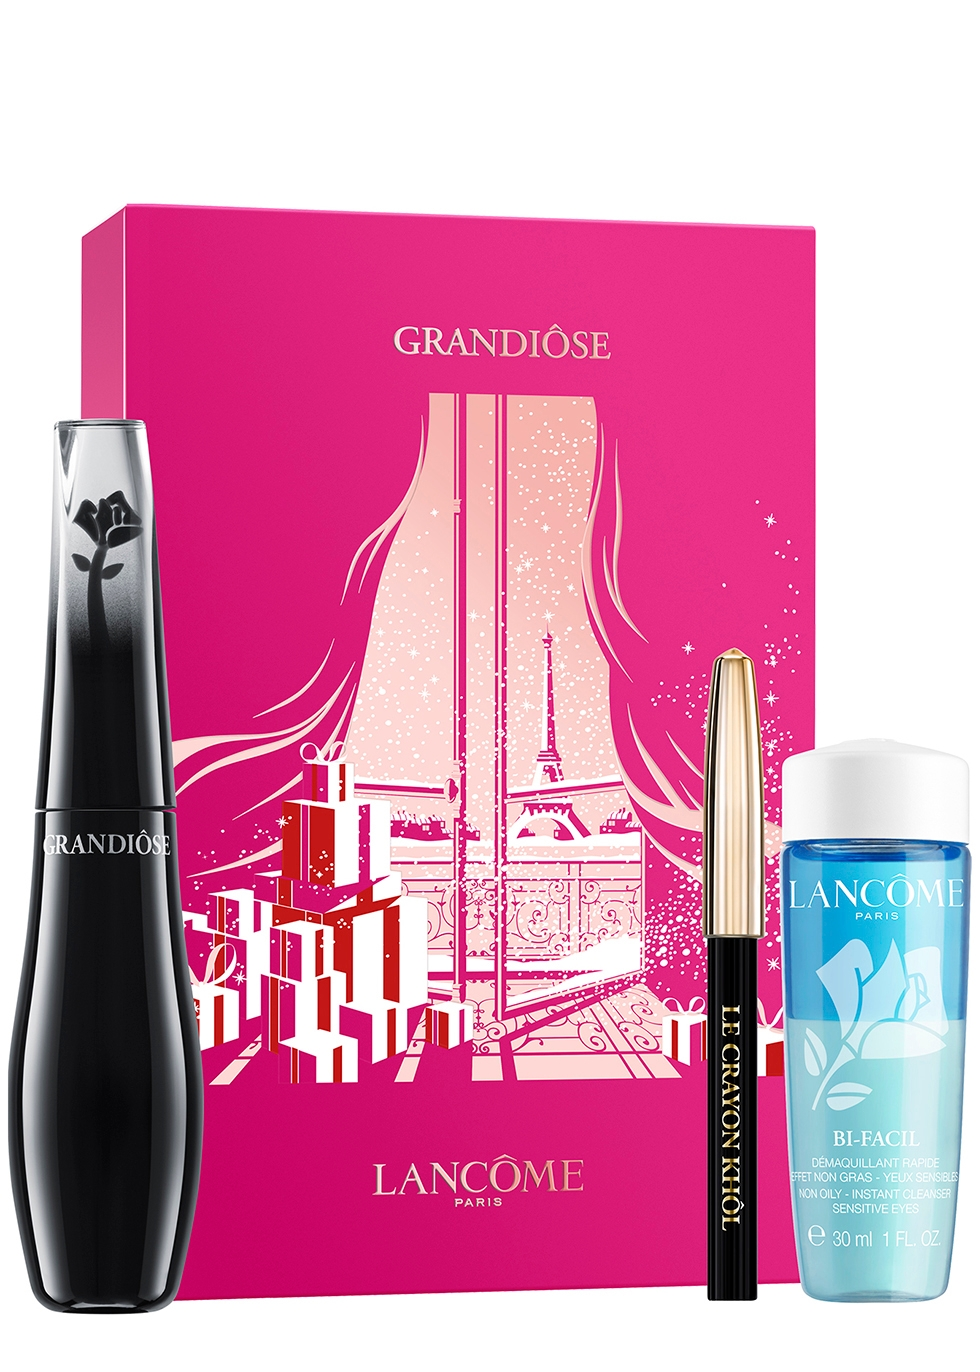 Shop Lancome Beauty on DailyMail